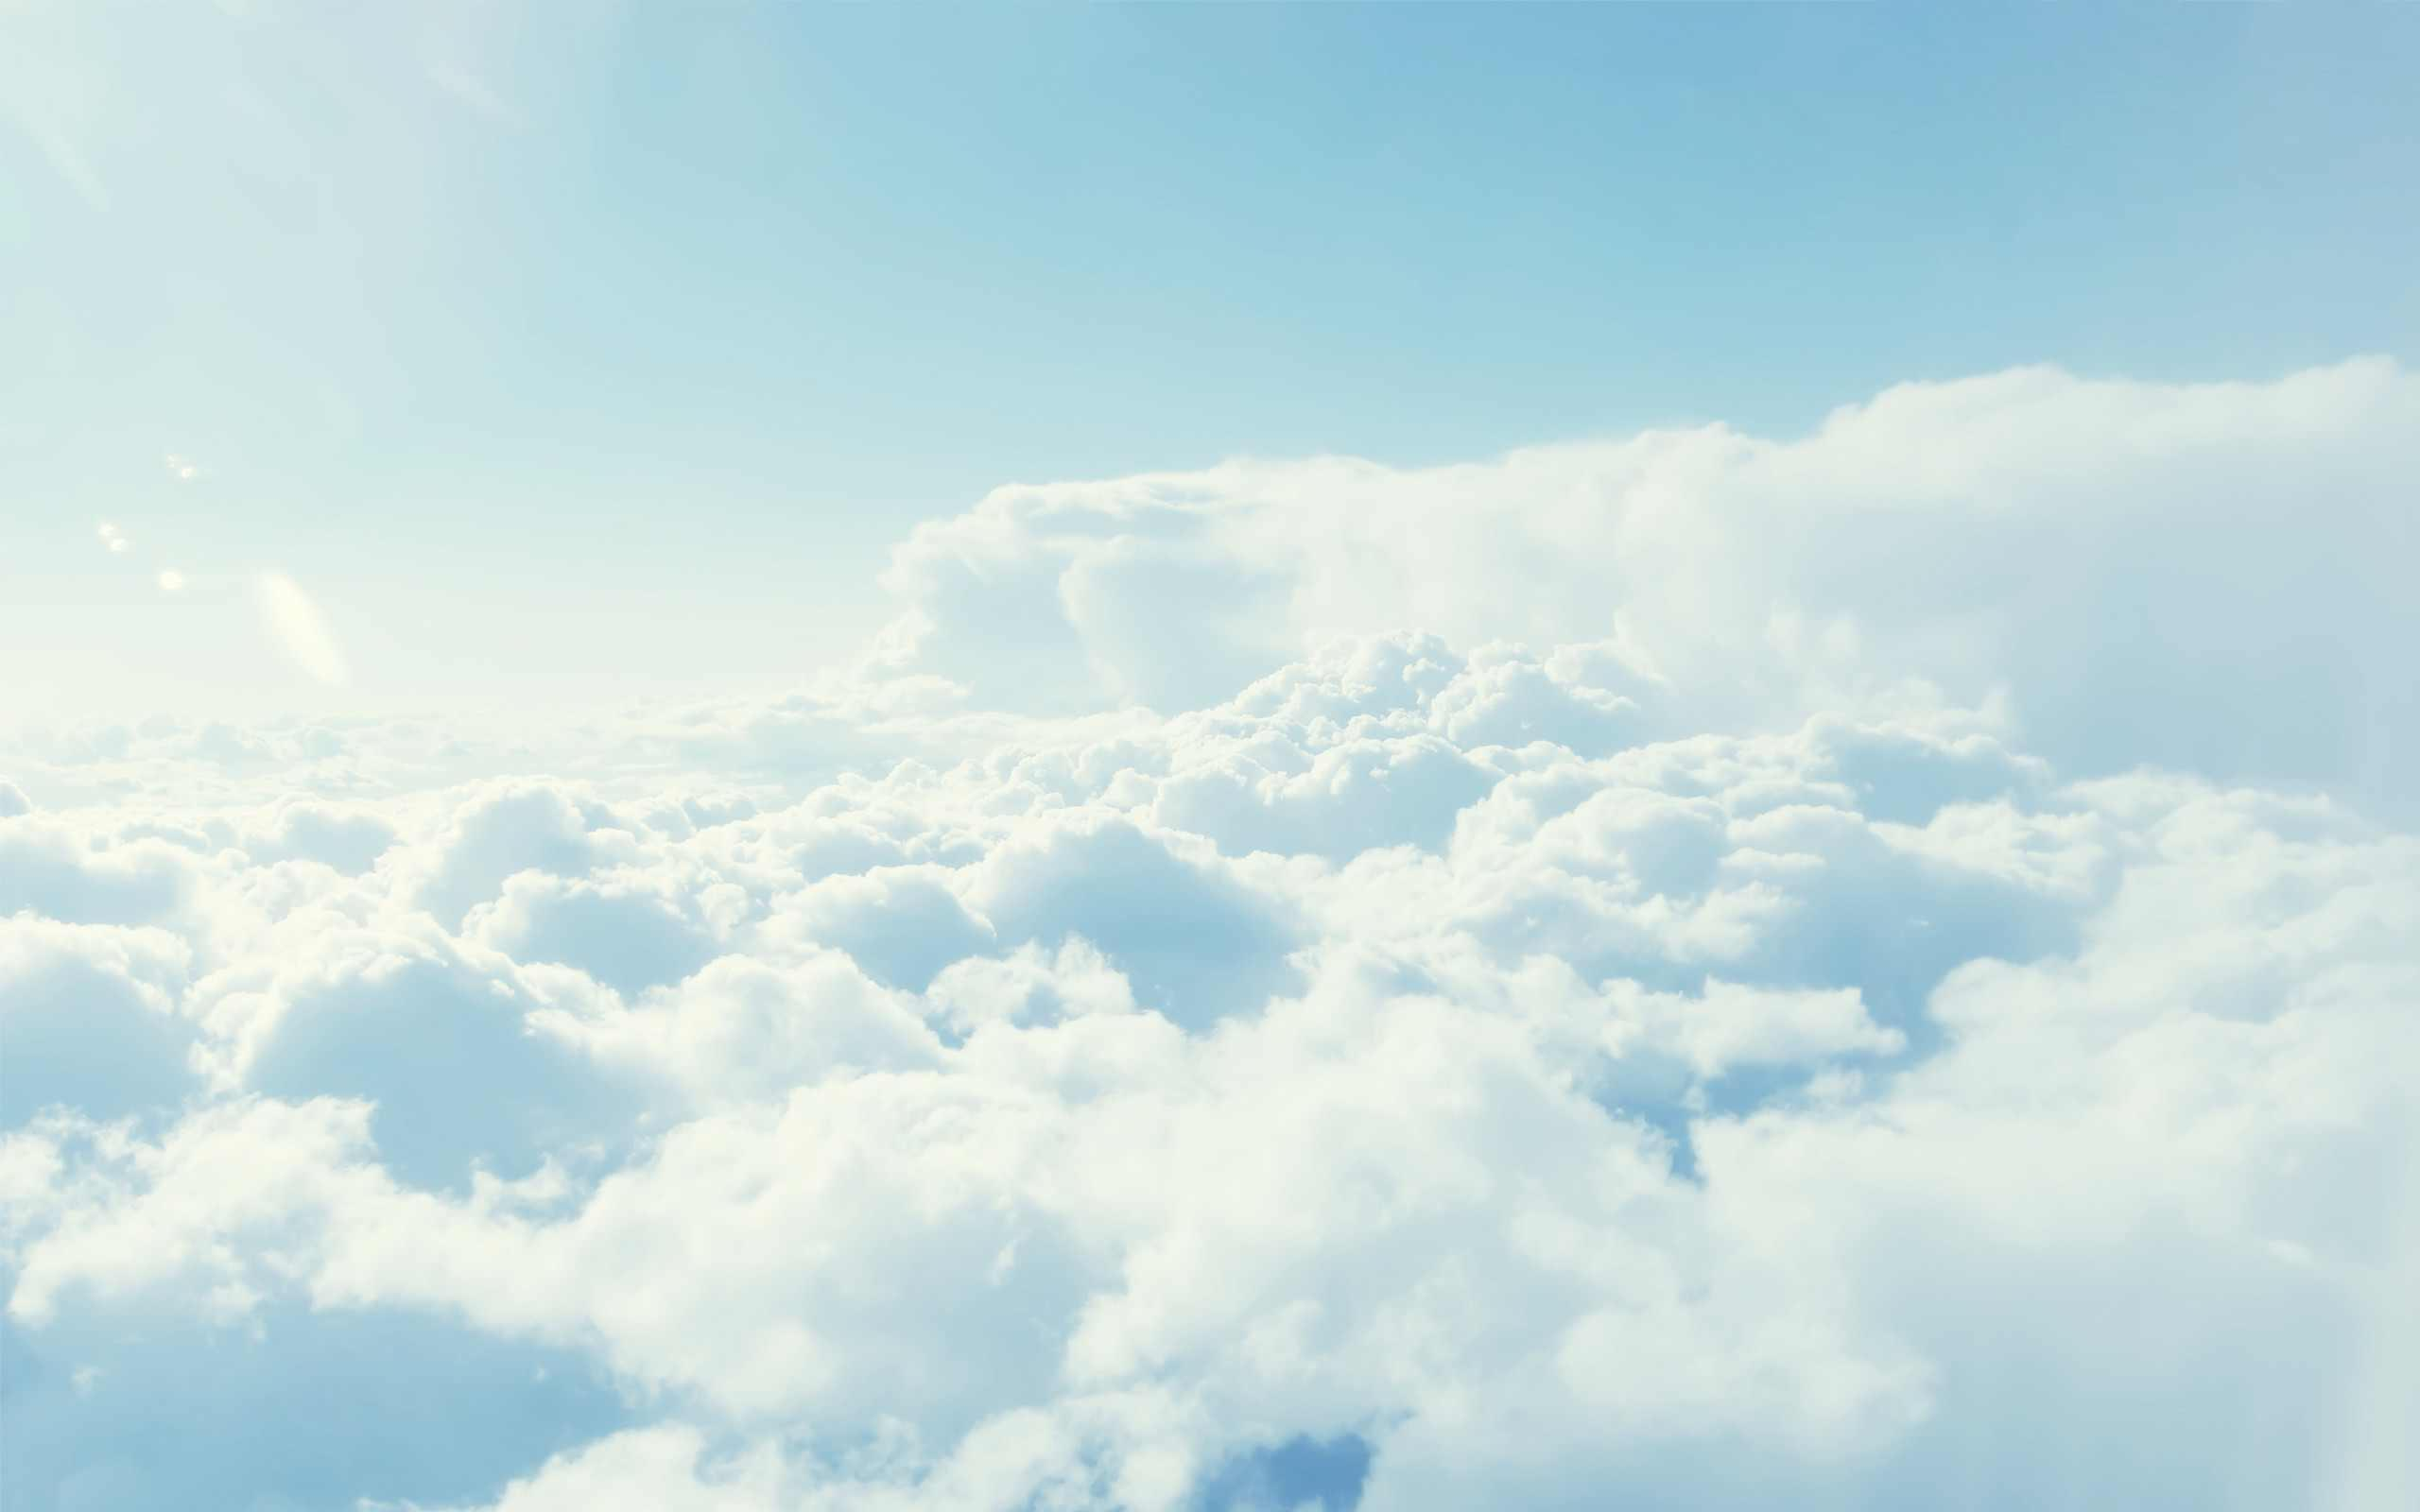 Clouds Res: 2560x1600 / Size:108kb. Views: 89071. More Sky wallpapers